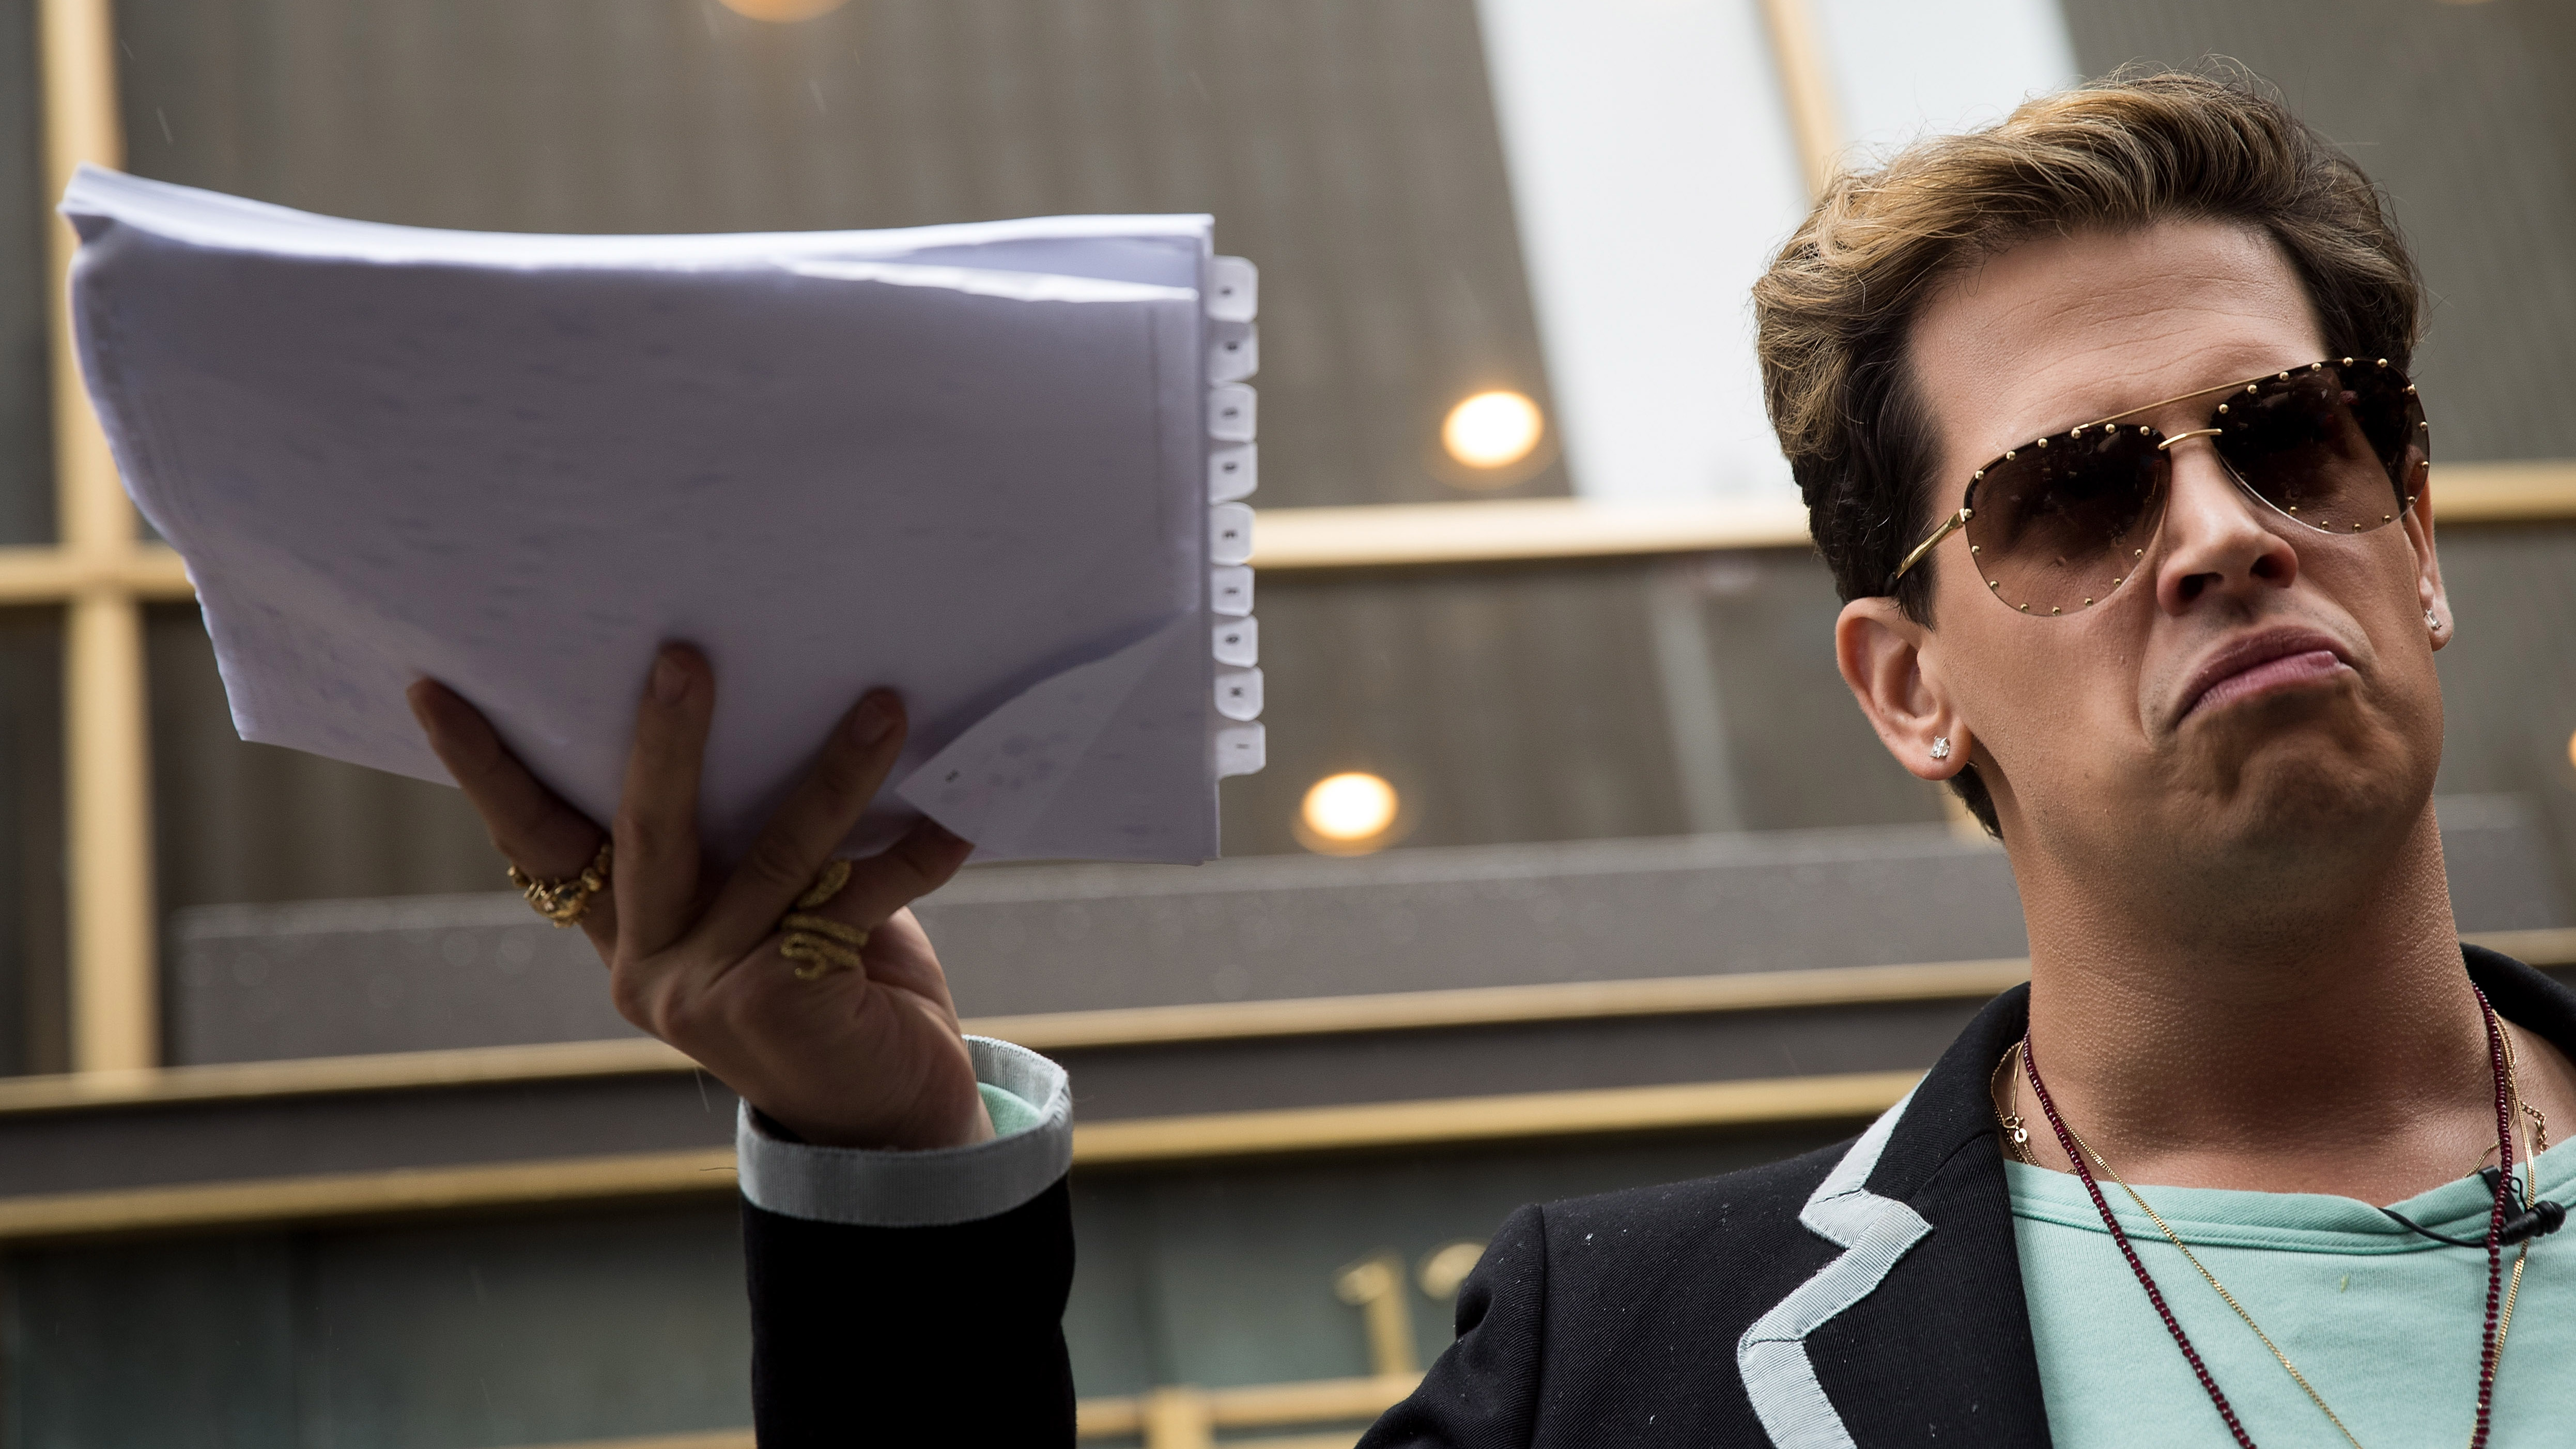 File image of Milo Yiannopoulos outside the offices of Simon & Schuster in New York City.